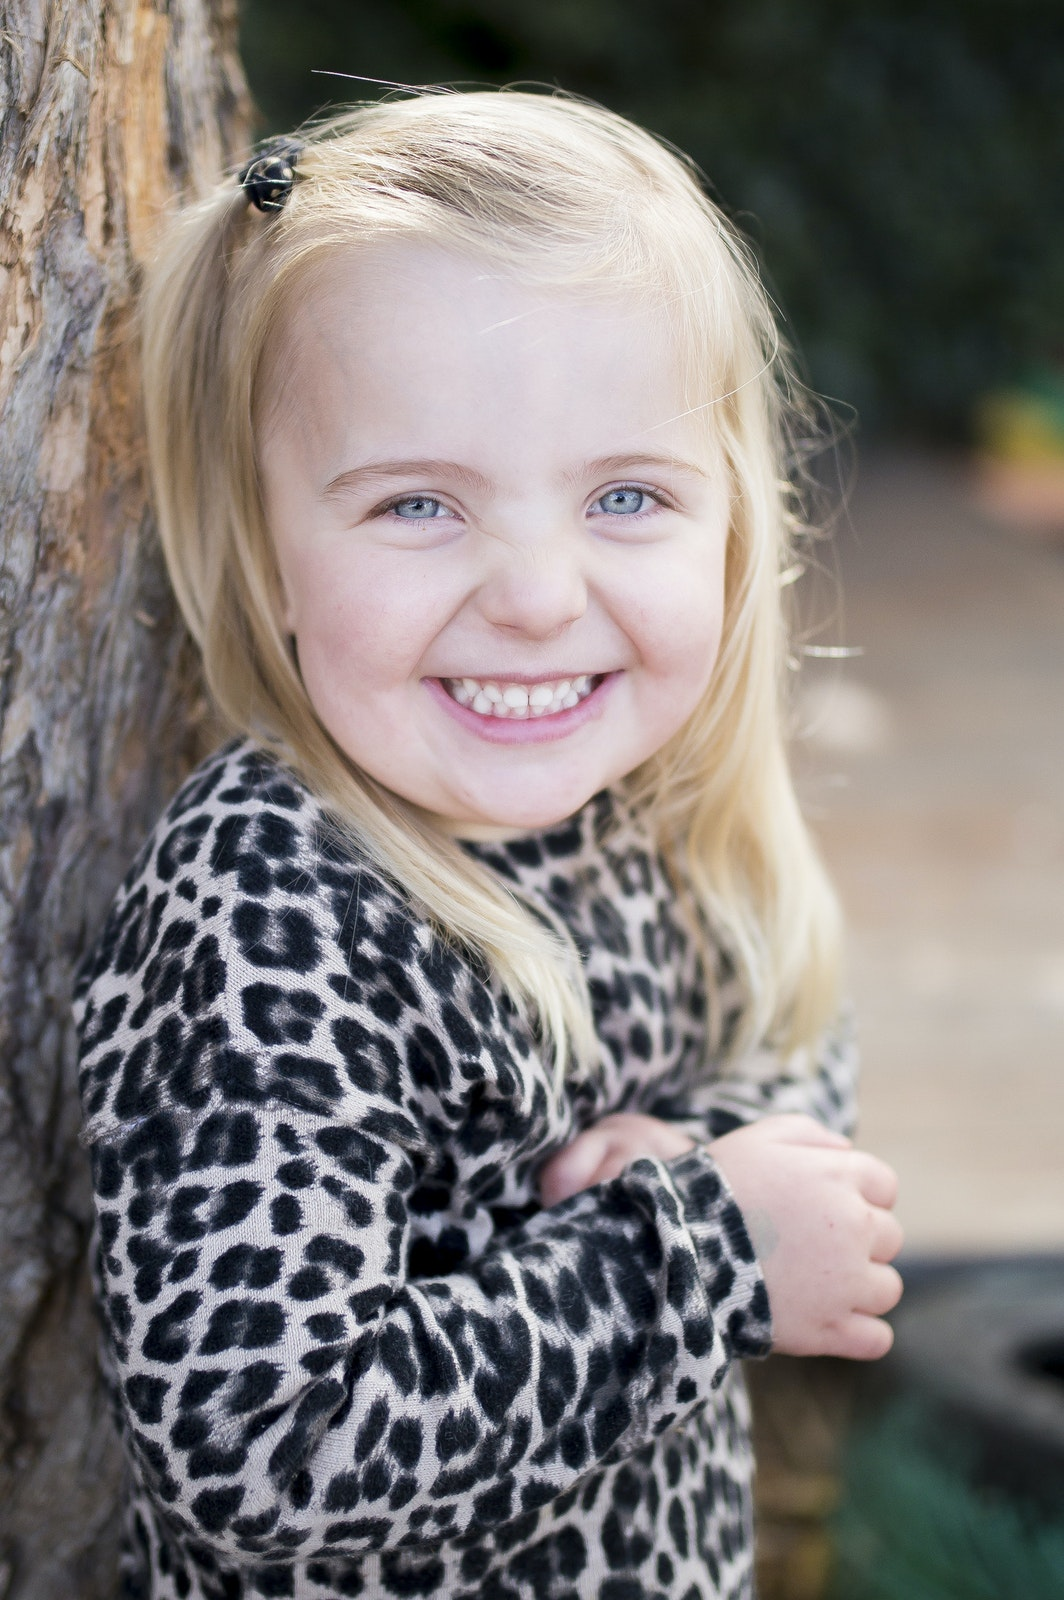 Best Wollongong Daycare Preschool Photographer 6